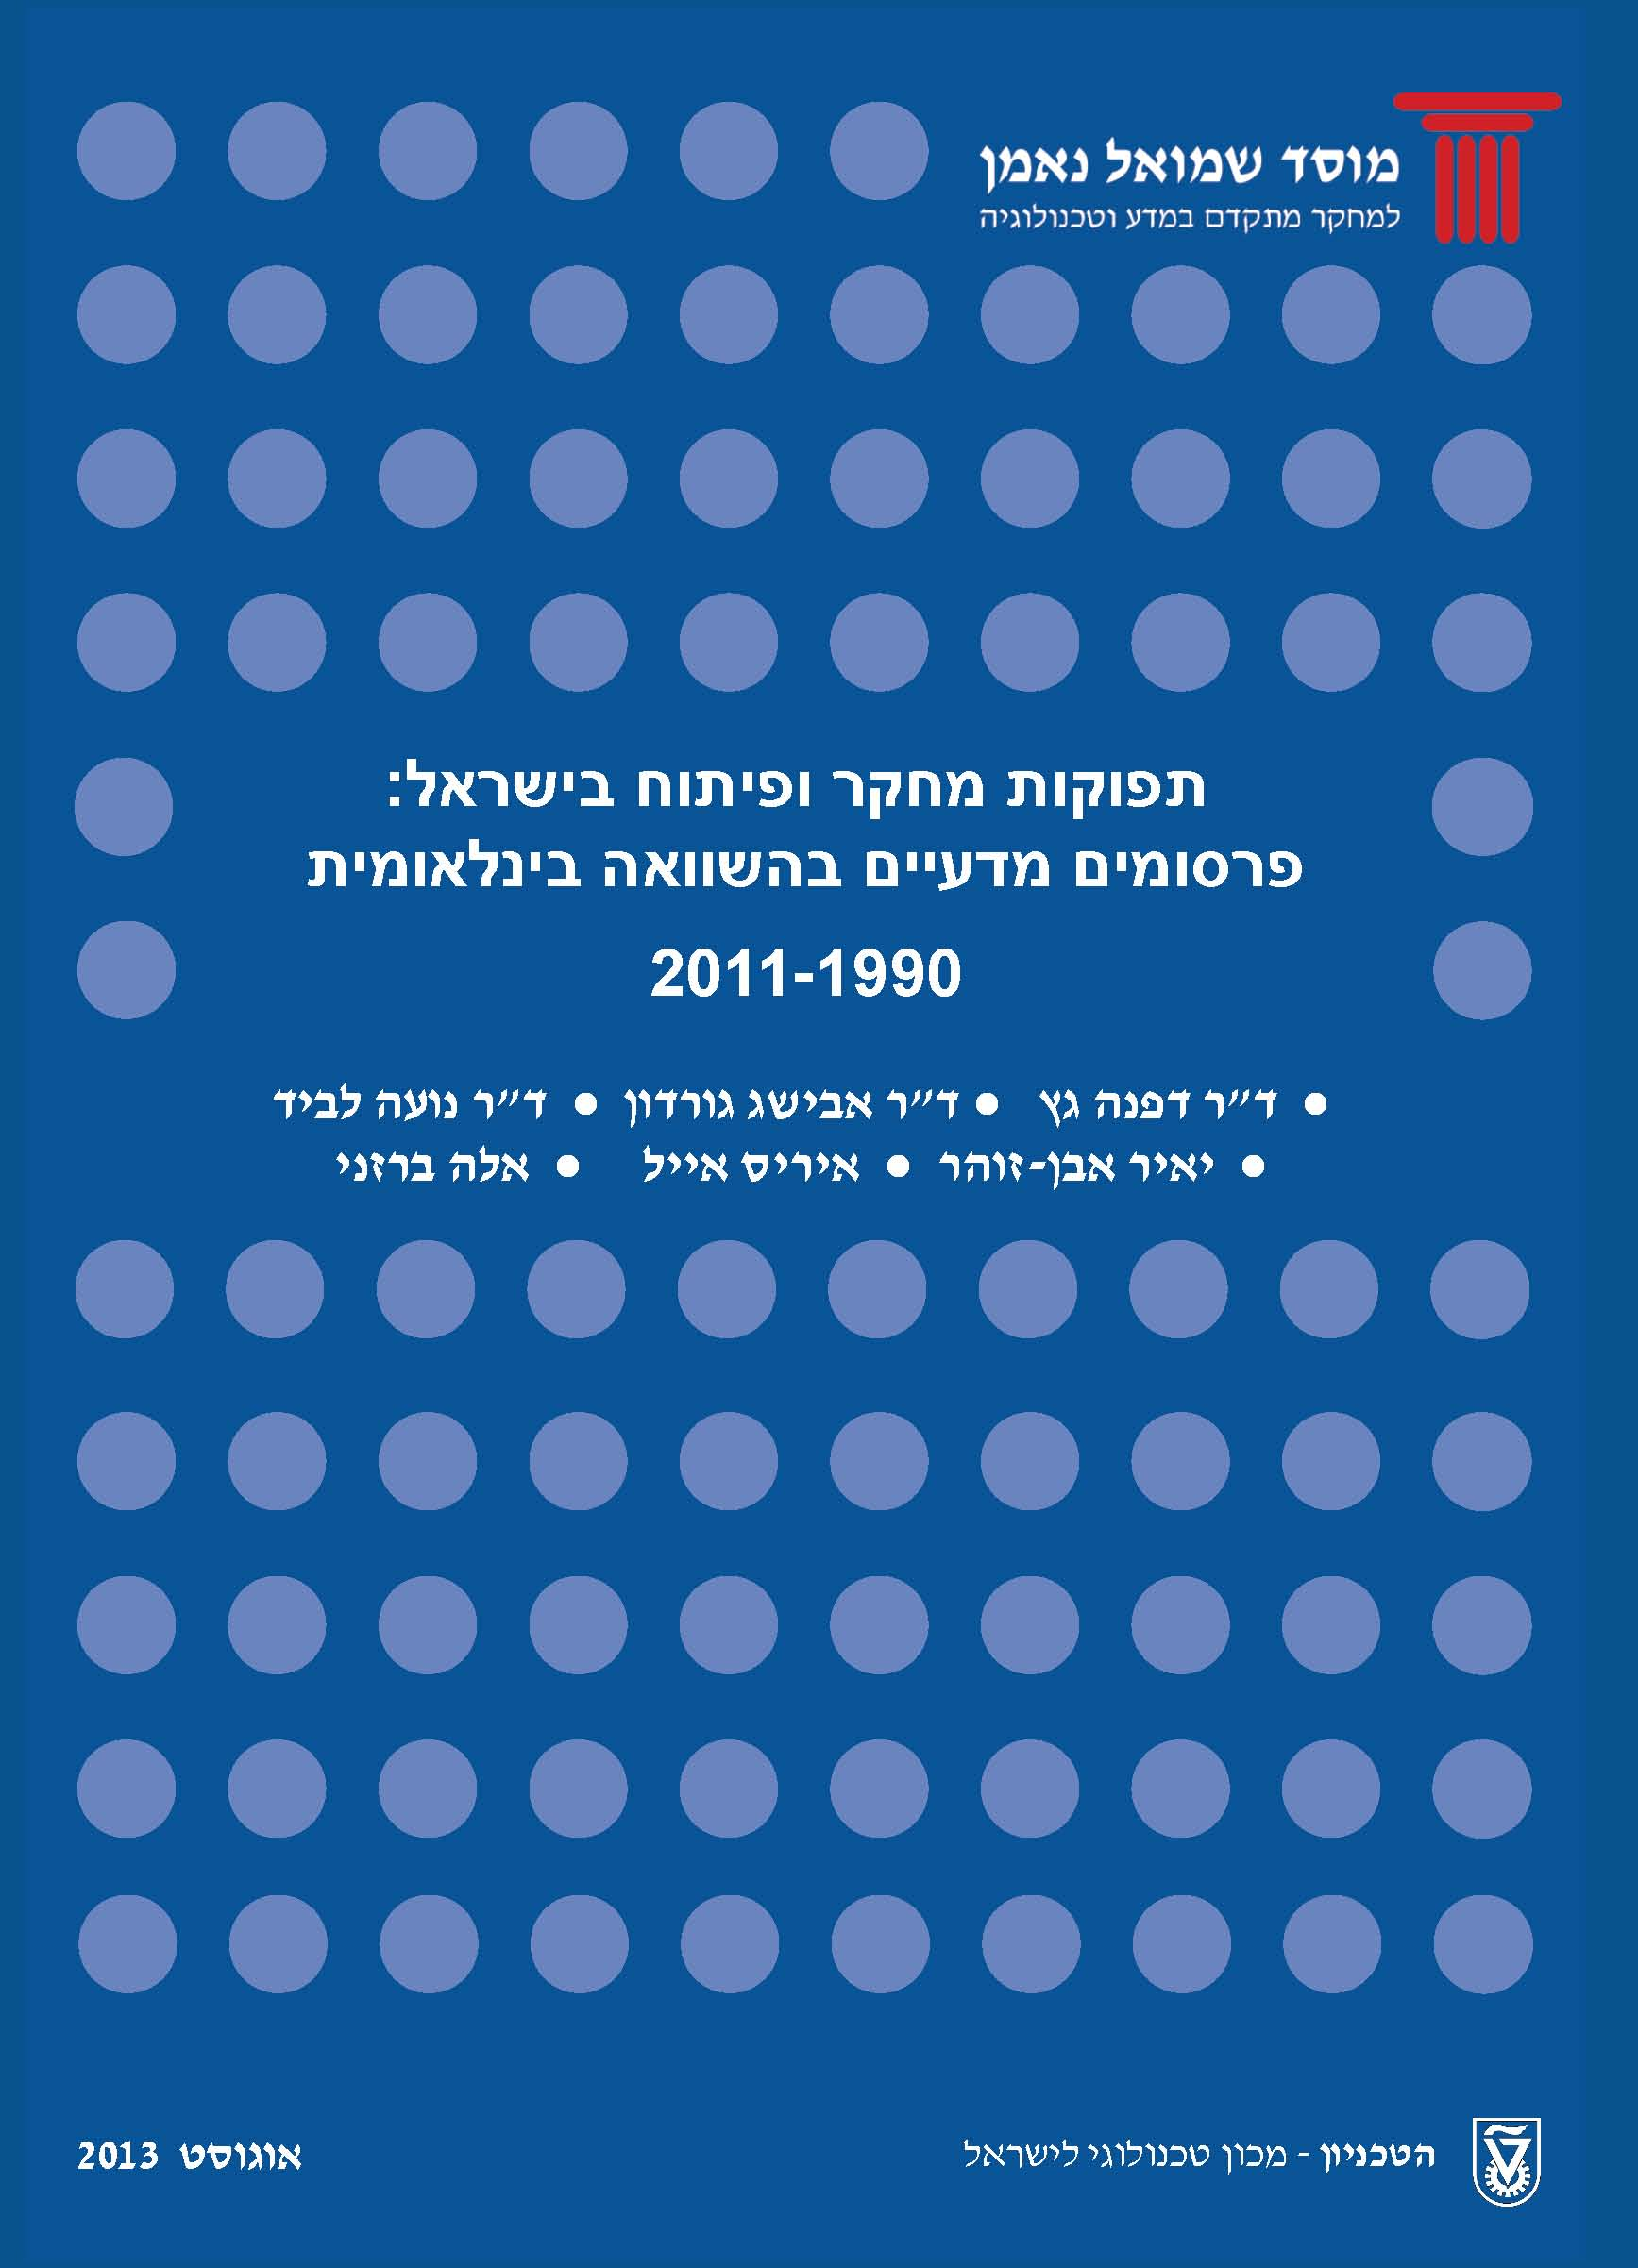 Outputs in Israel: International Comparison of Scientific Publications, 1990-2011